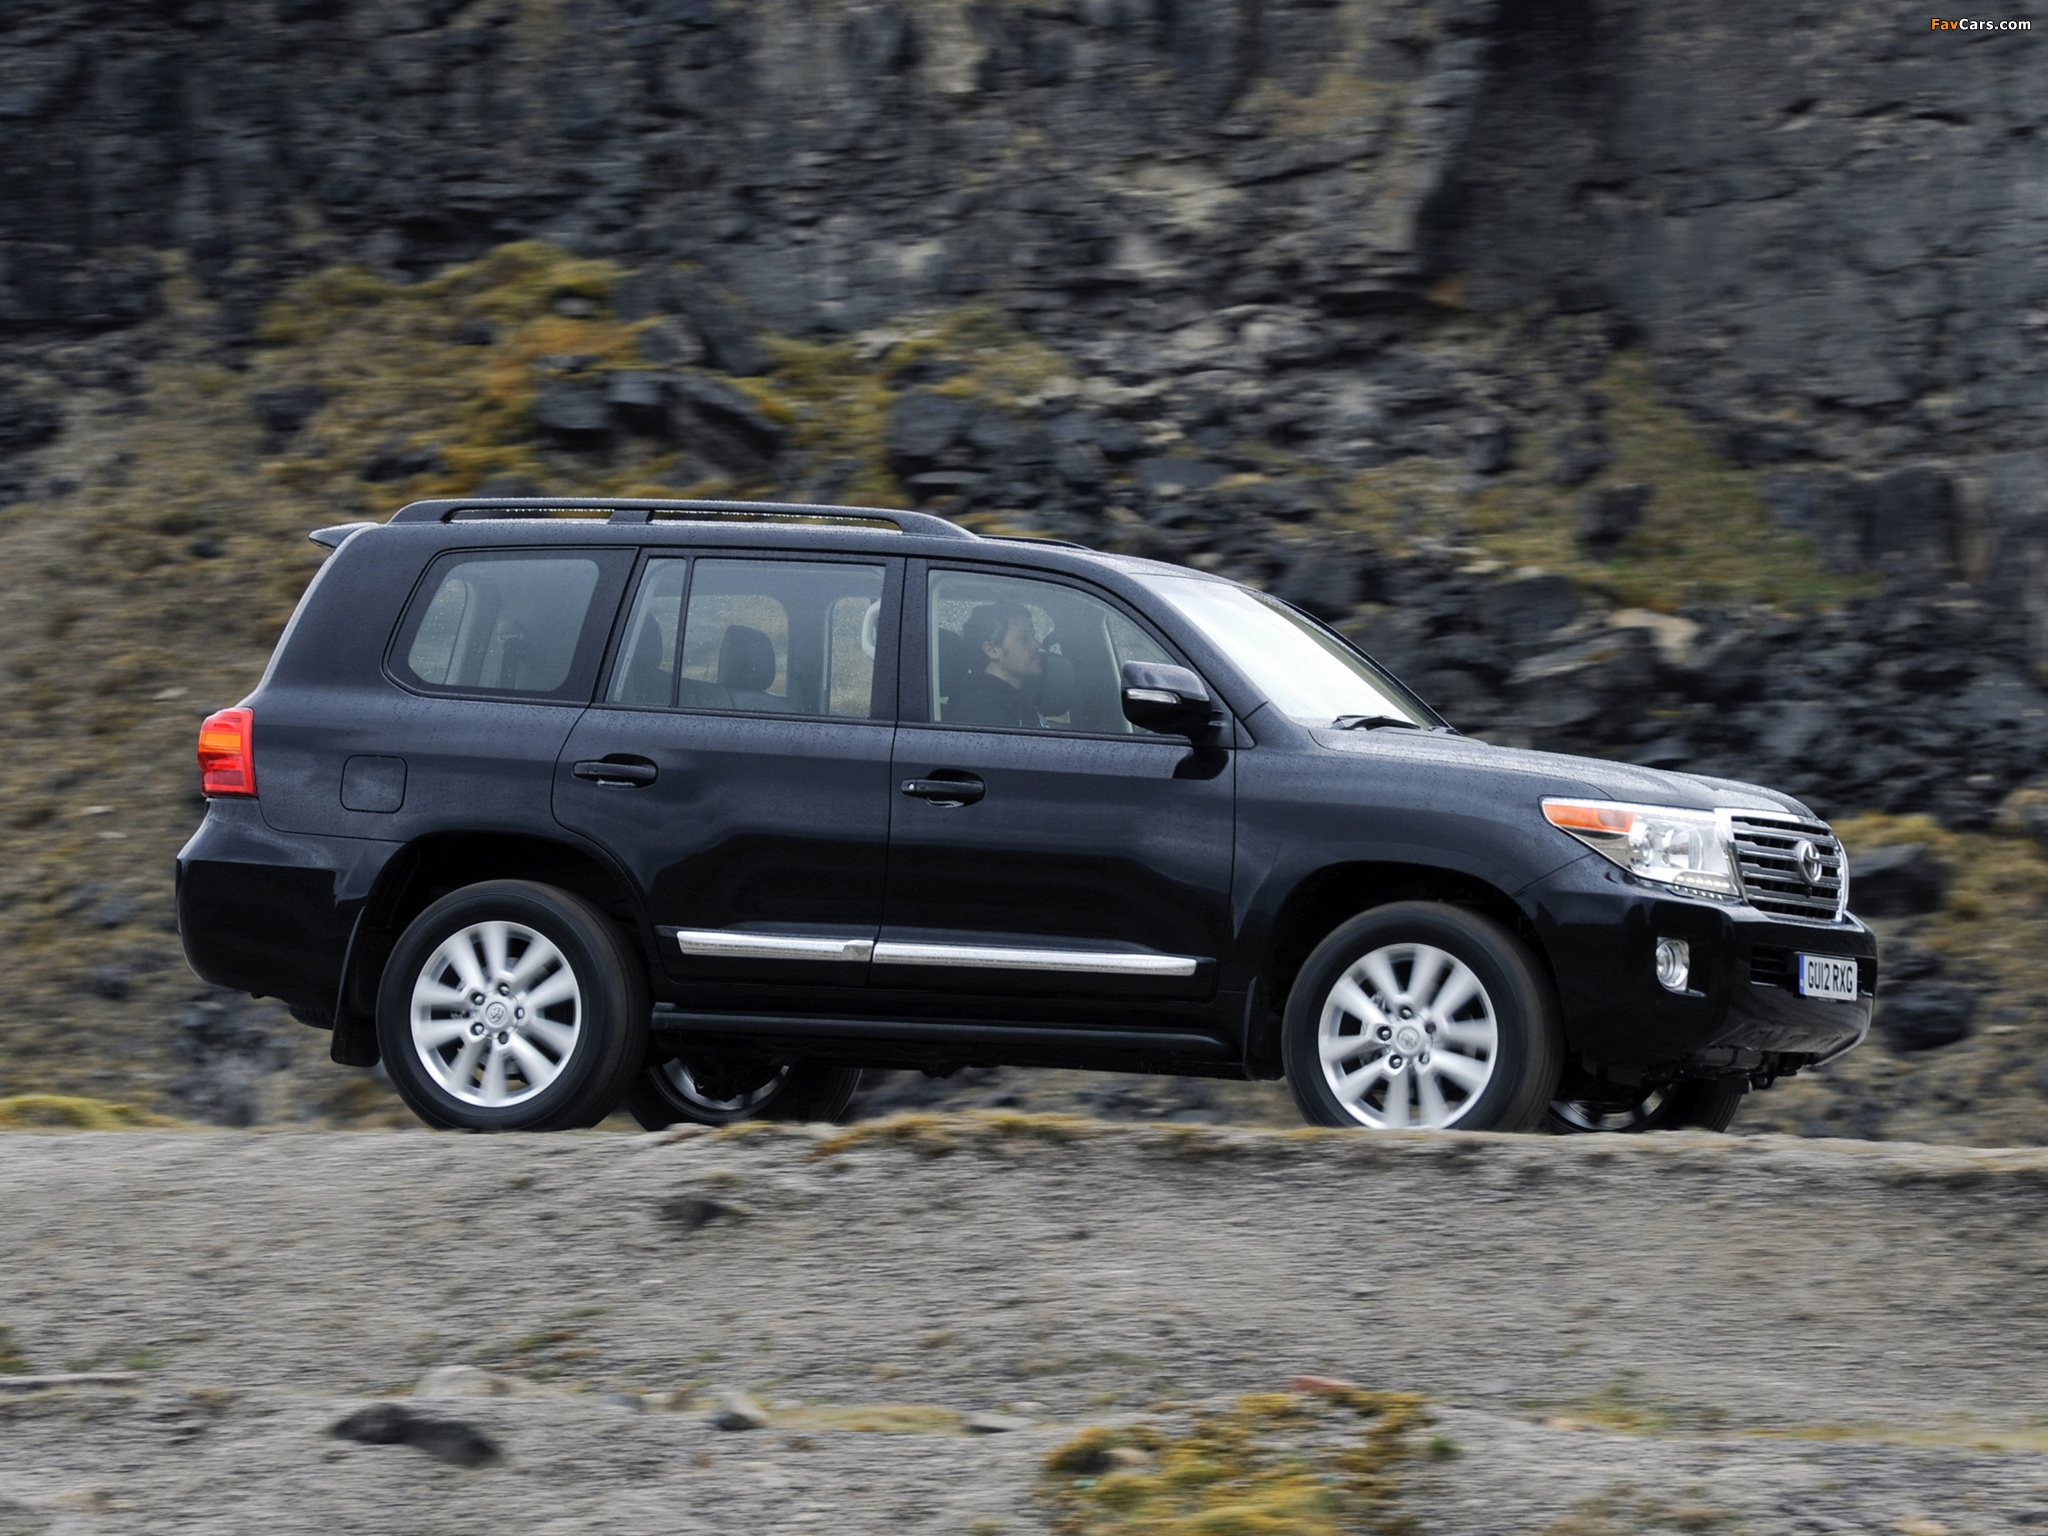 Toyota Land Cruiser V8 Uk Spec Vdj200 2012 Wallpapers